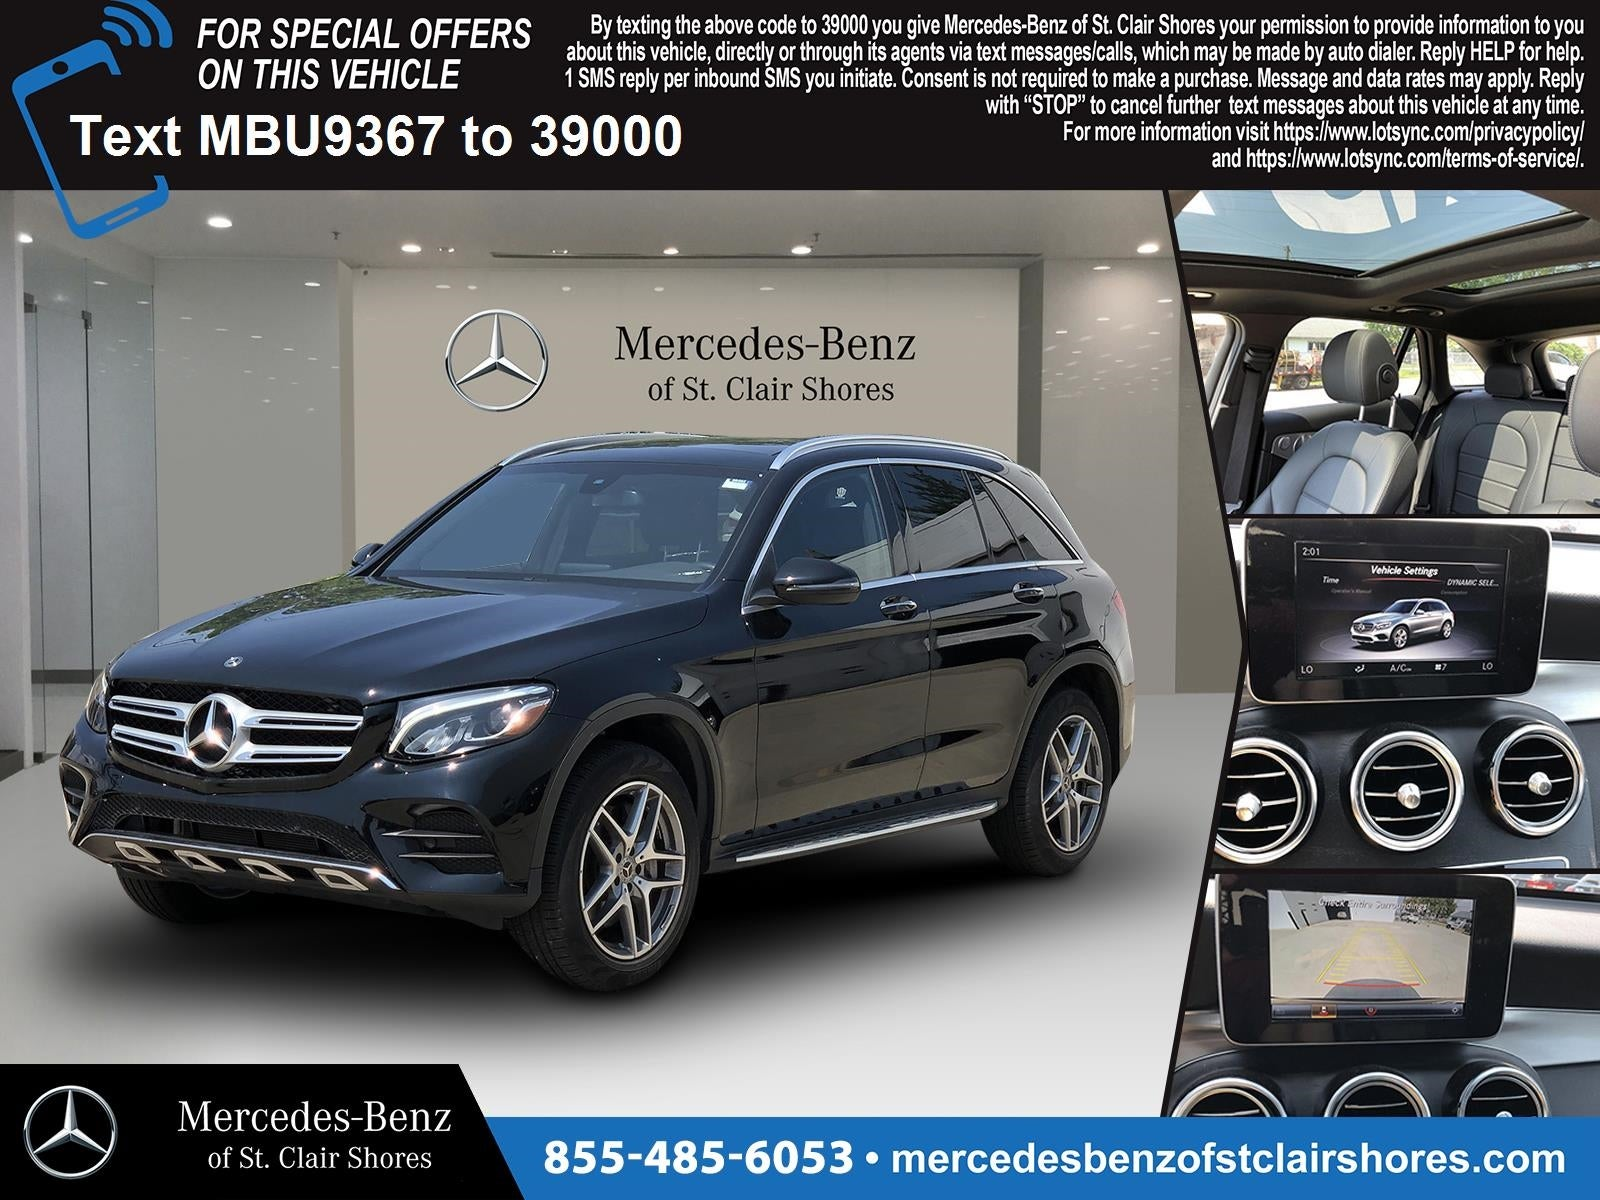 Mercedes Benz Vehicle Inventory Mercedes Benz Dealer In St Clair Shores Mi New And Used Mercedes Benz Dealership Serving St Clair Shores Grosse Pointe Woods Harper Woods Mi